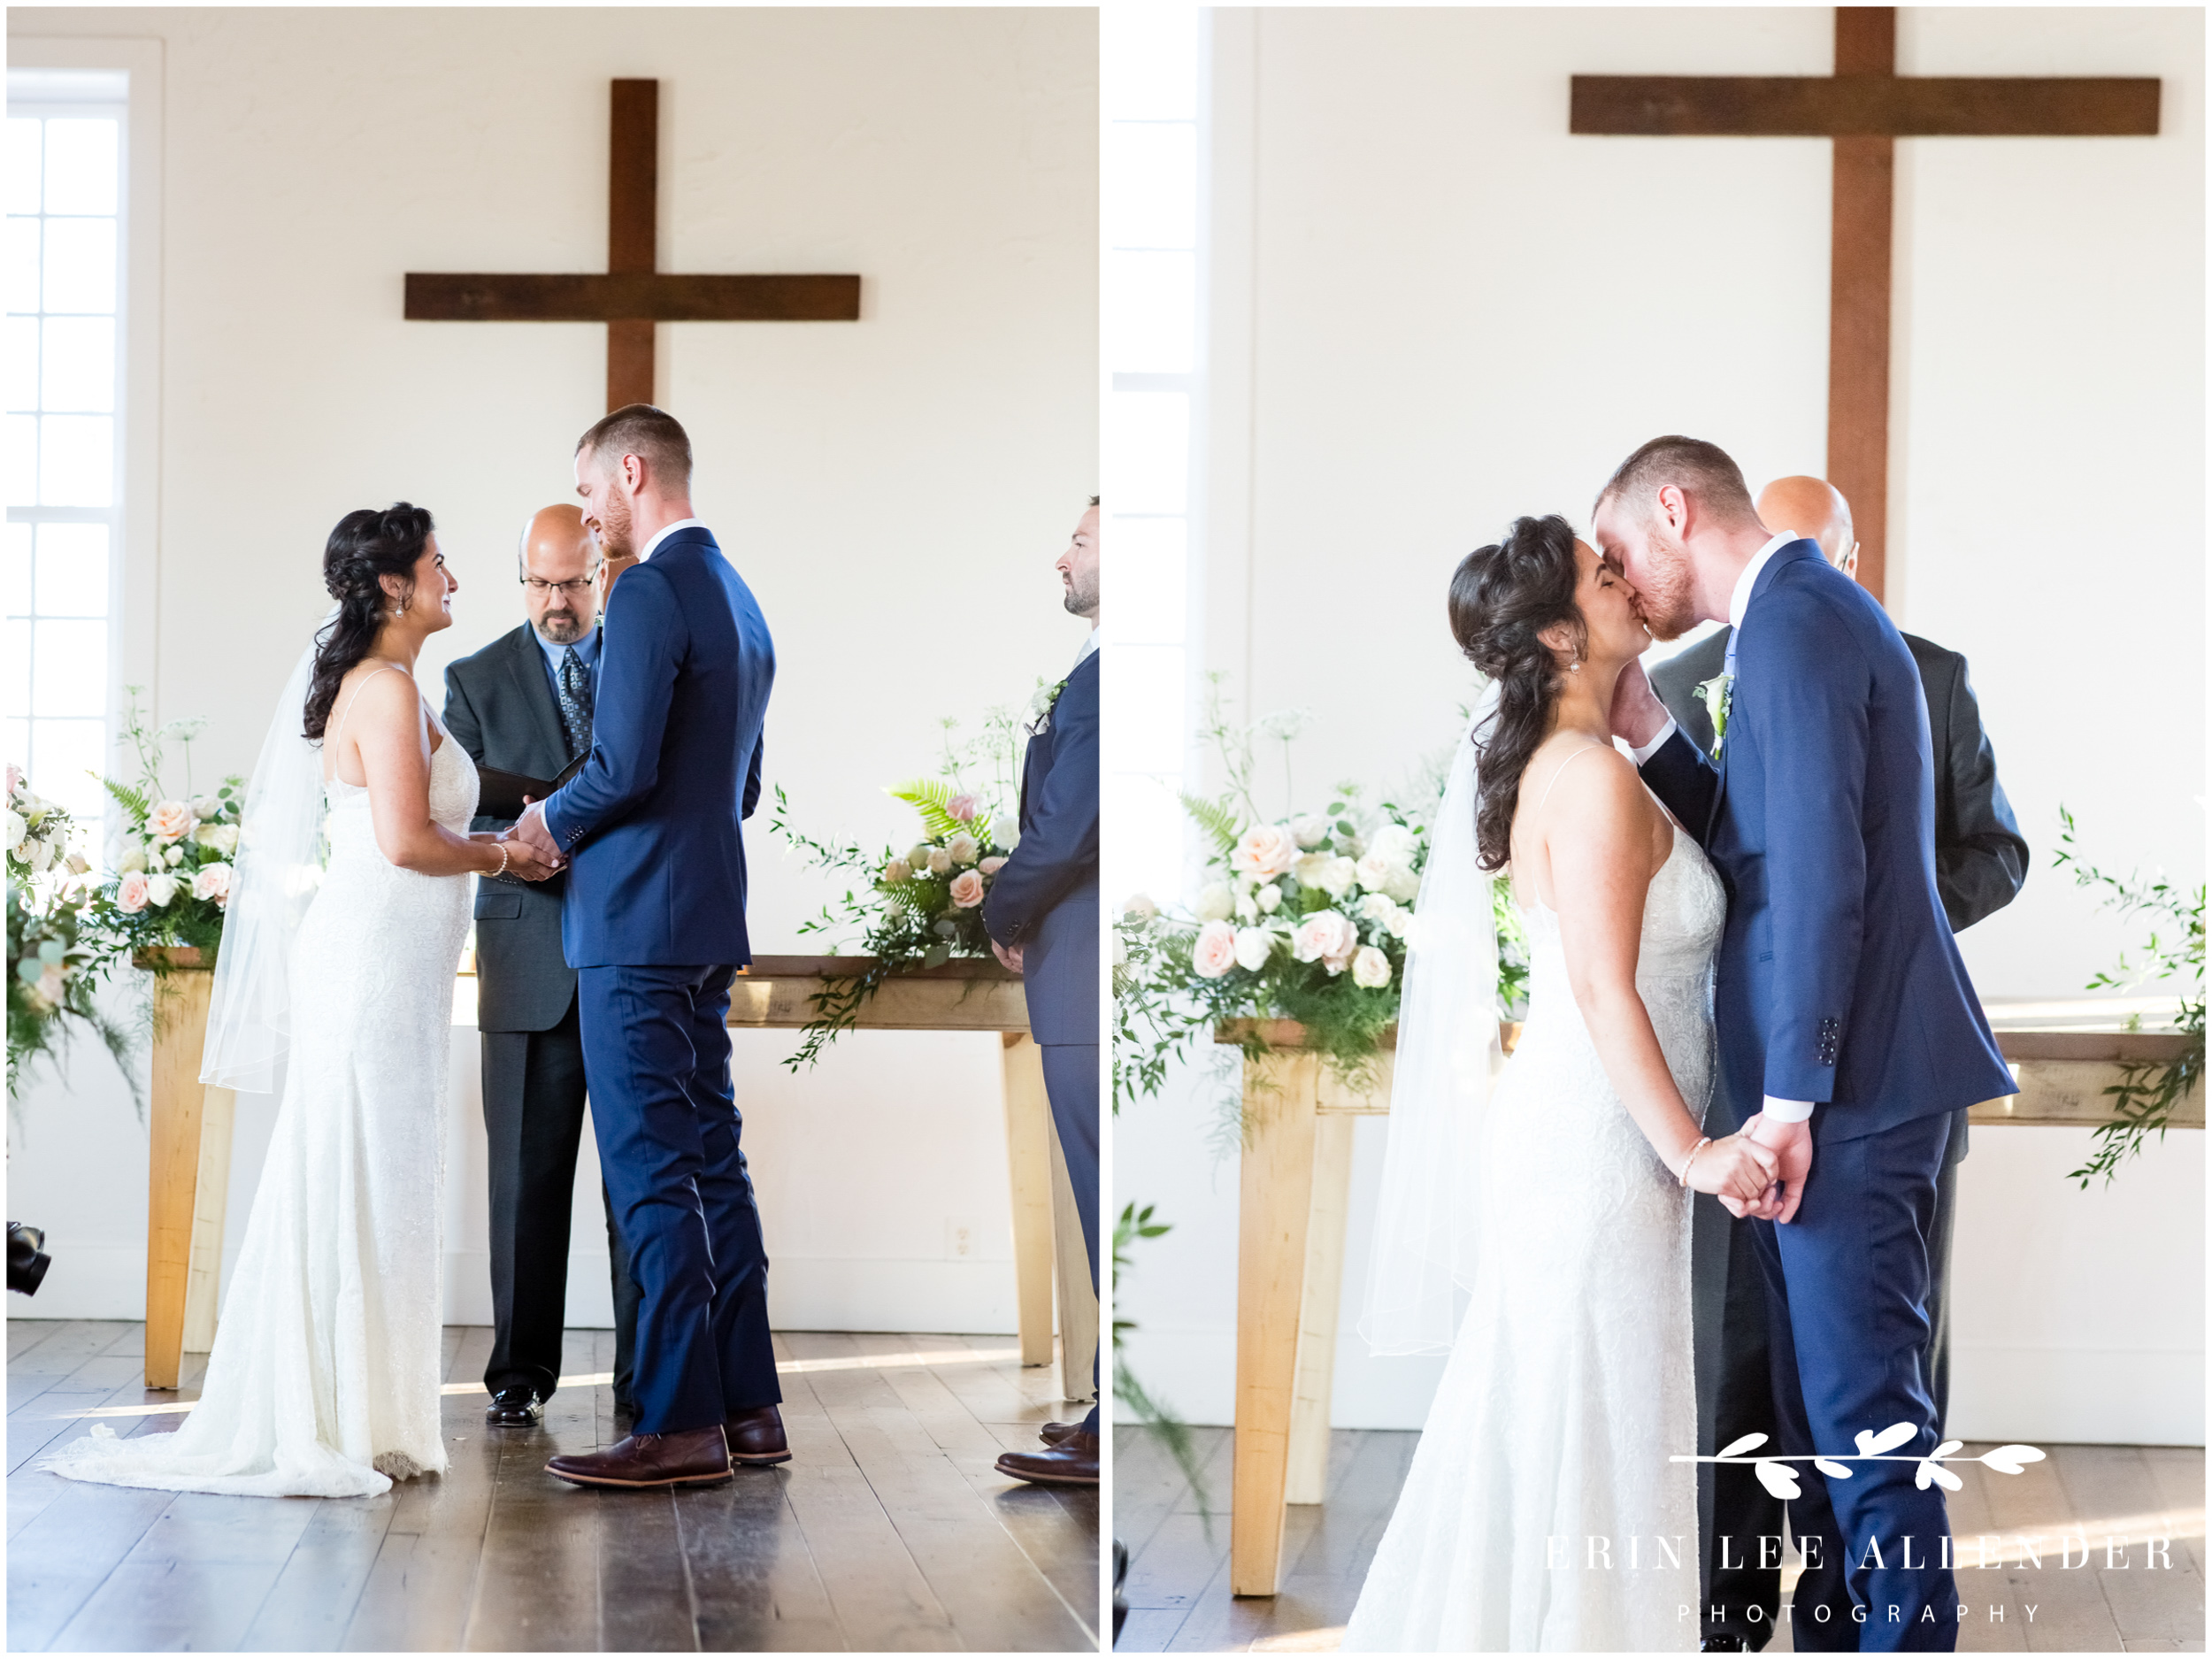 Bride-groom-kiss-alter